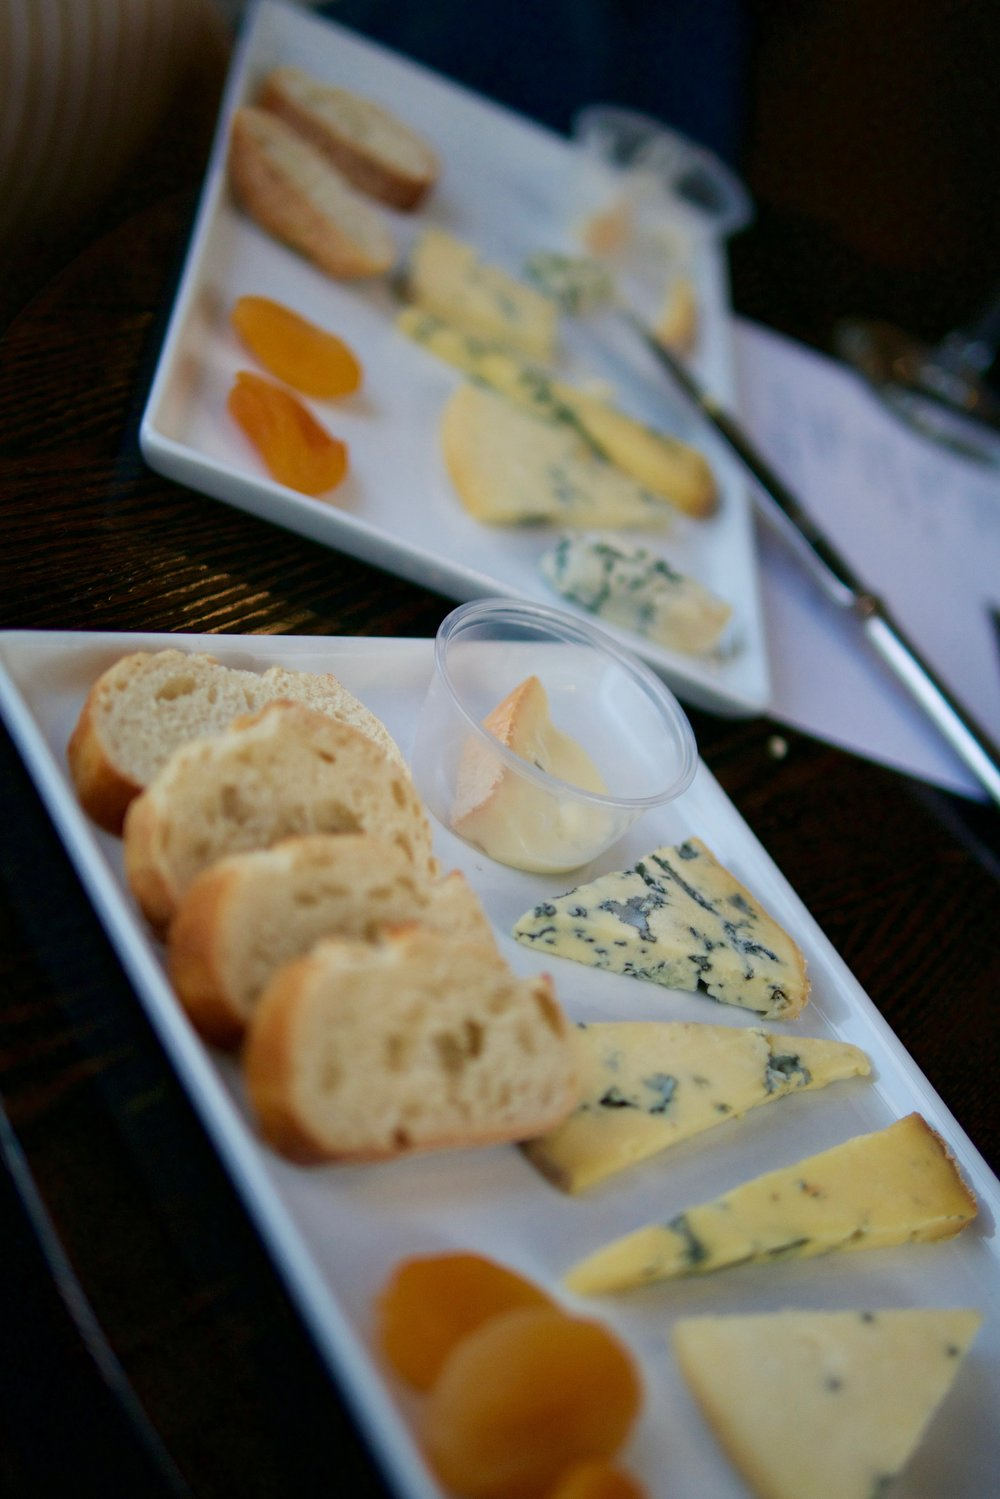 CHEESE CLASSES  We began hosting monthly cheese classes back in 2005. They quickly gained in popularity and we soon offered two seatings each month. Led by Kathryn, they feature 5 cheeses from a particular region with an optional paired wine and are a great and tasty way to gather with friends or have a date night while getting to learn a little more about the amazing world of cheese!